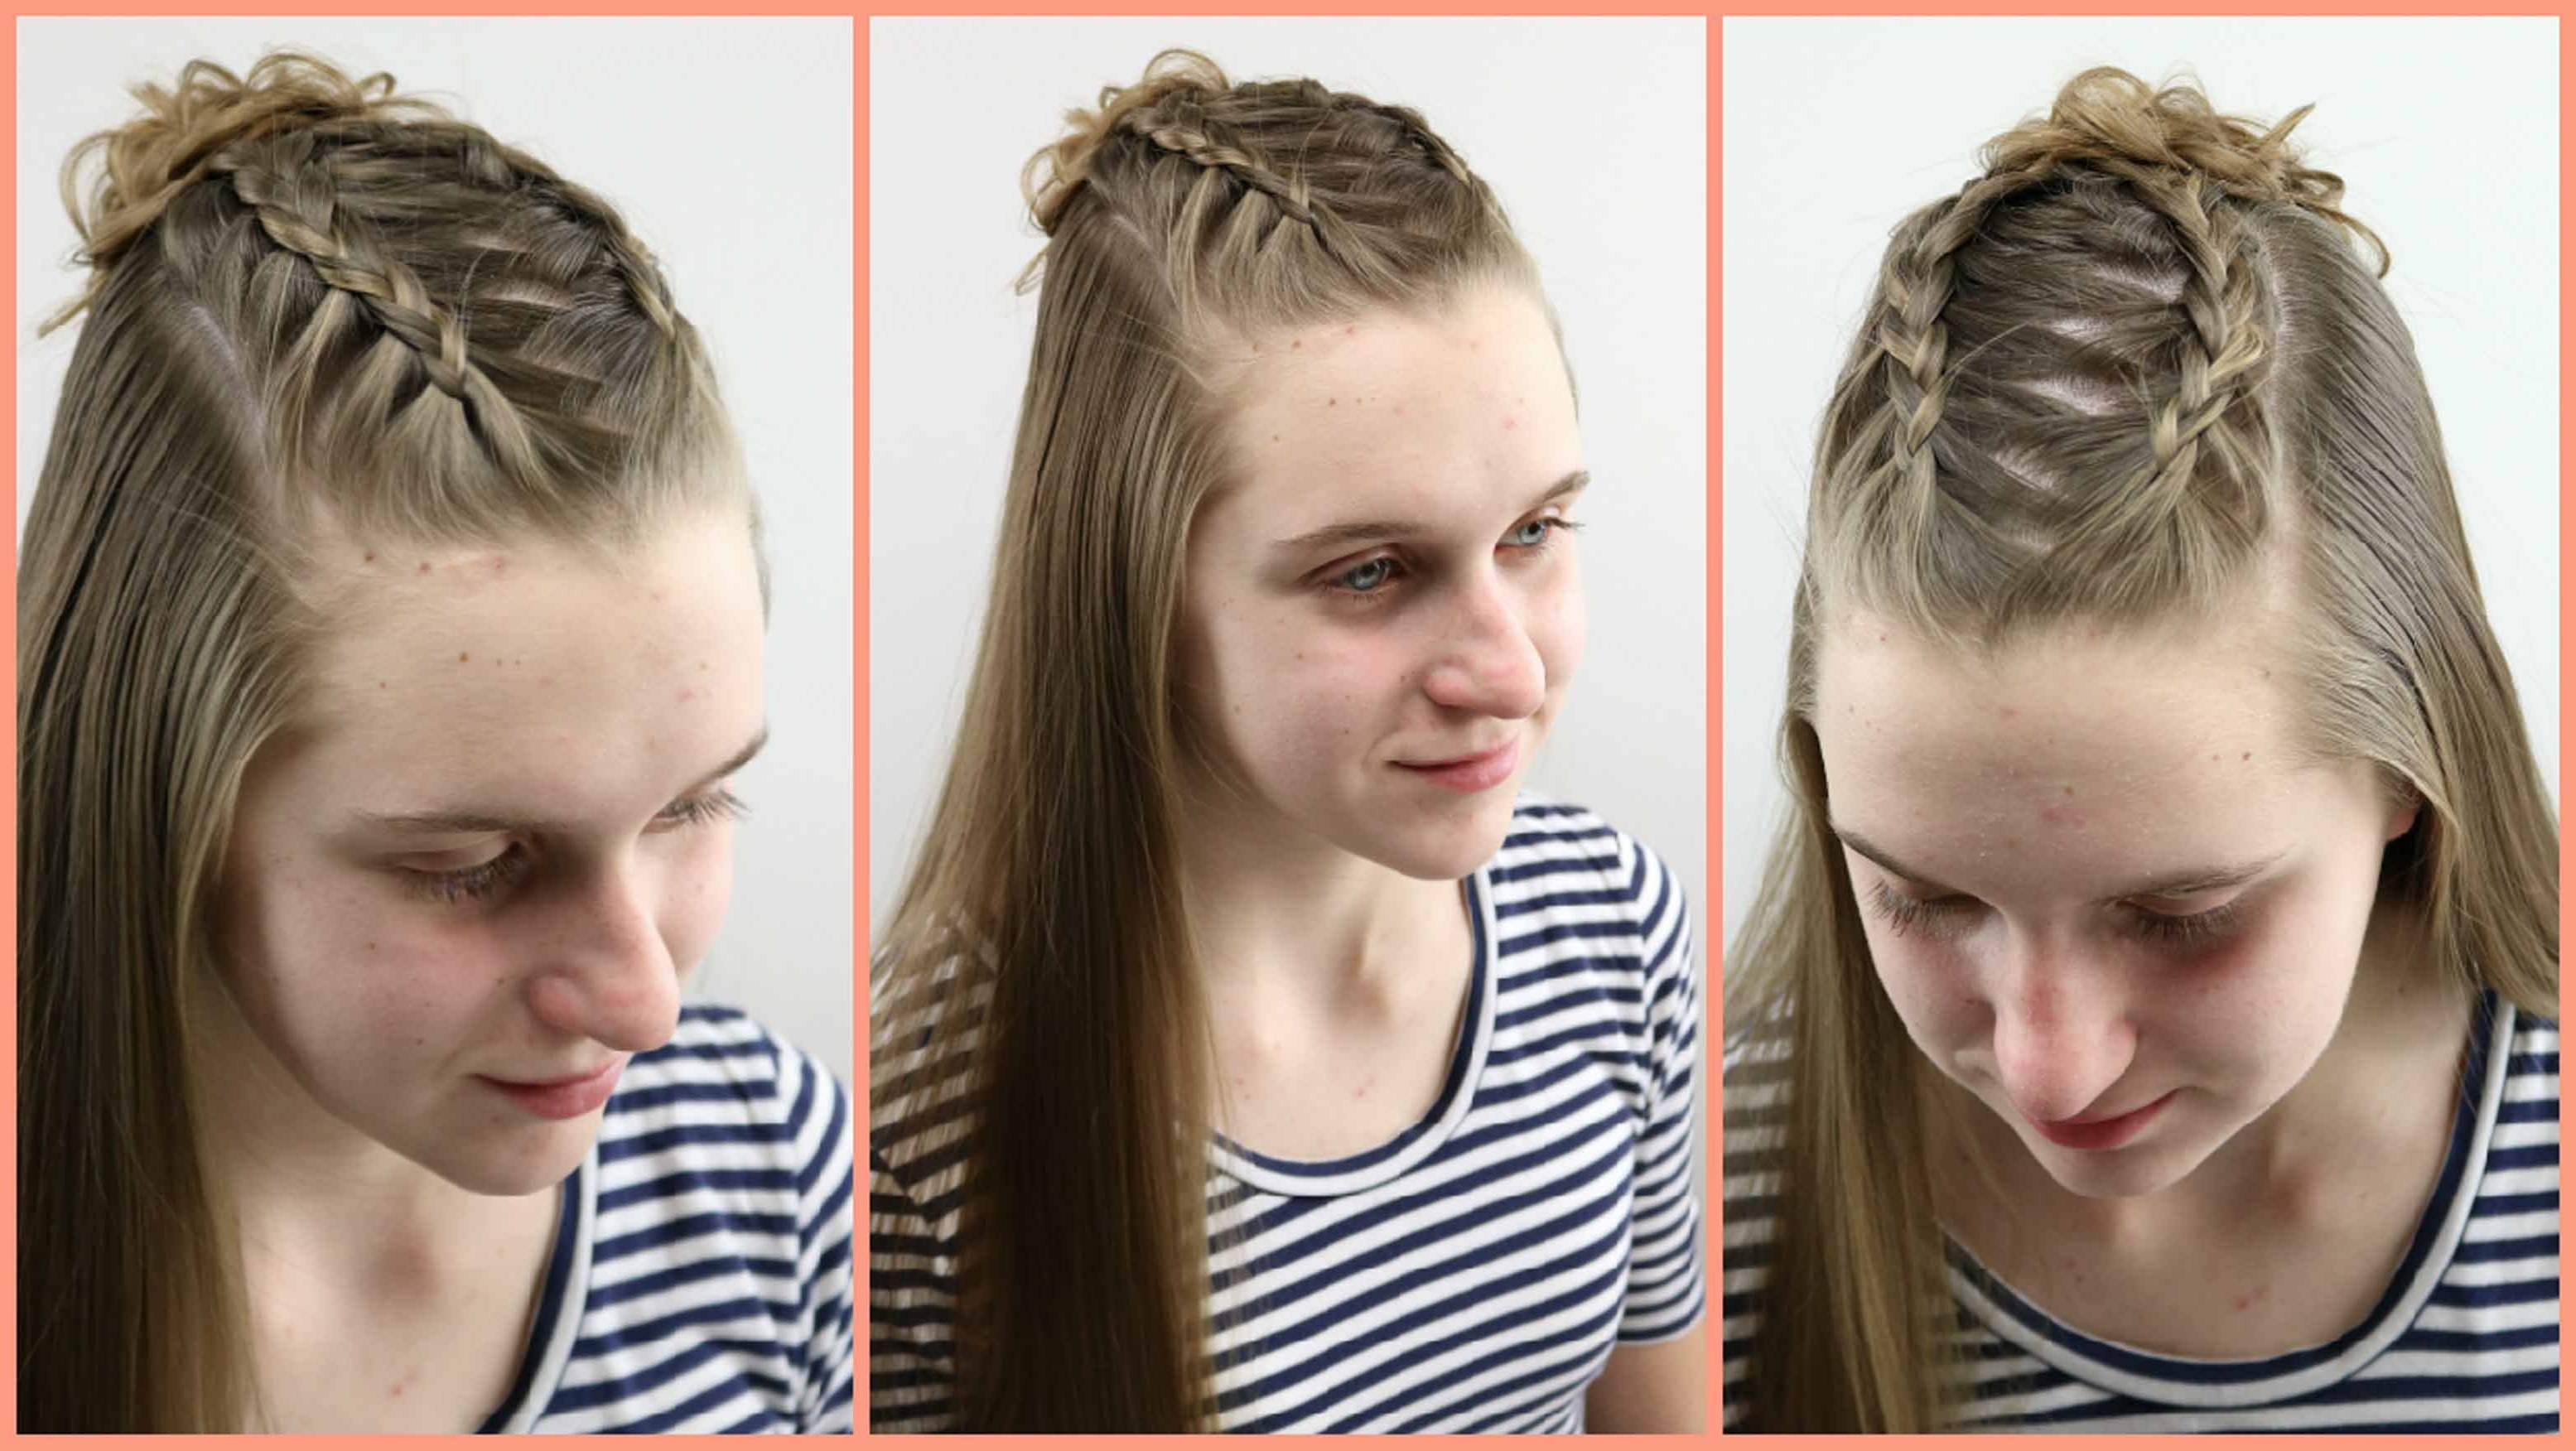 Babesinhairland For Most Recent Ponytail Hairstyles With A Braided Element (View 13 of 20)